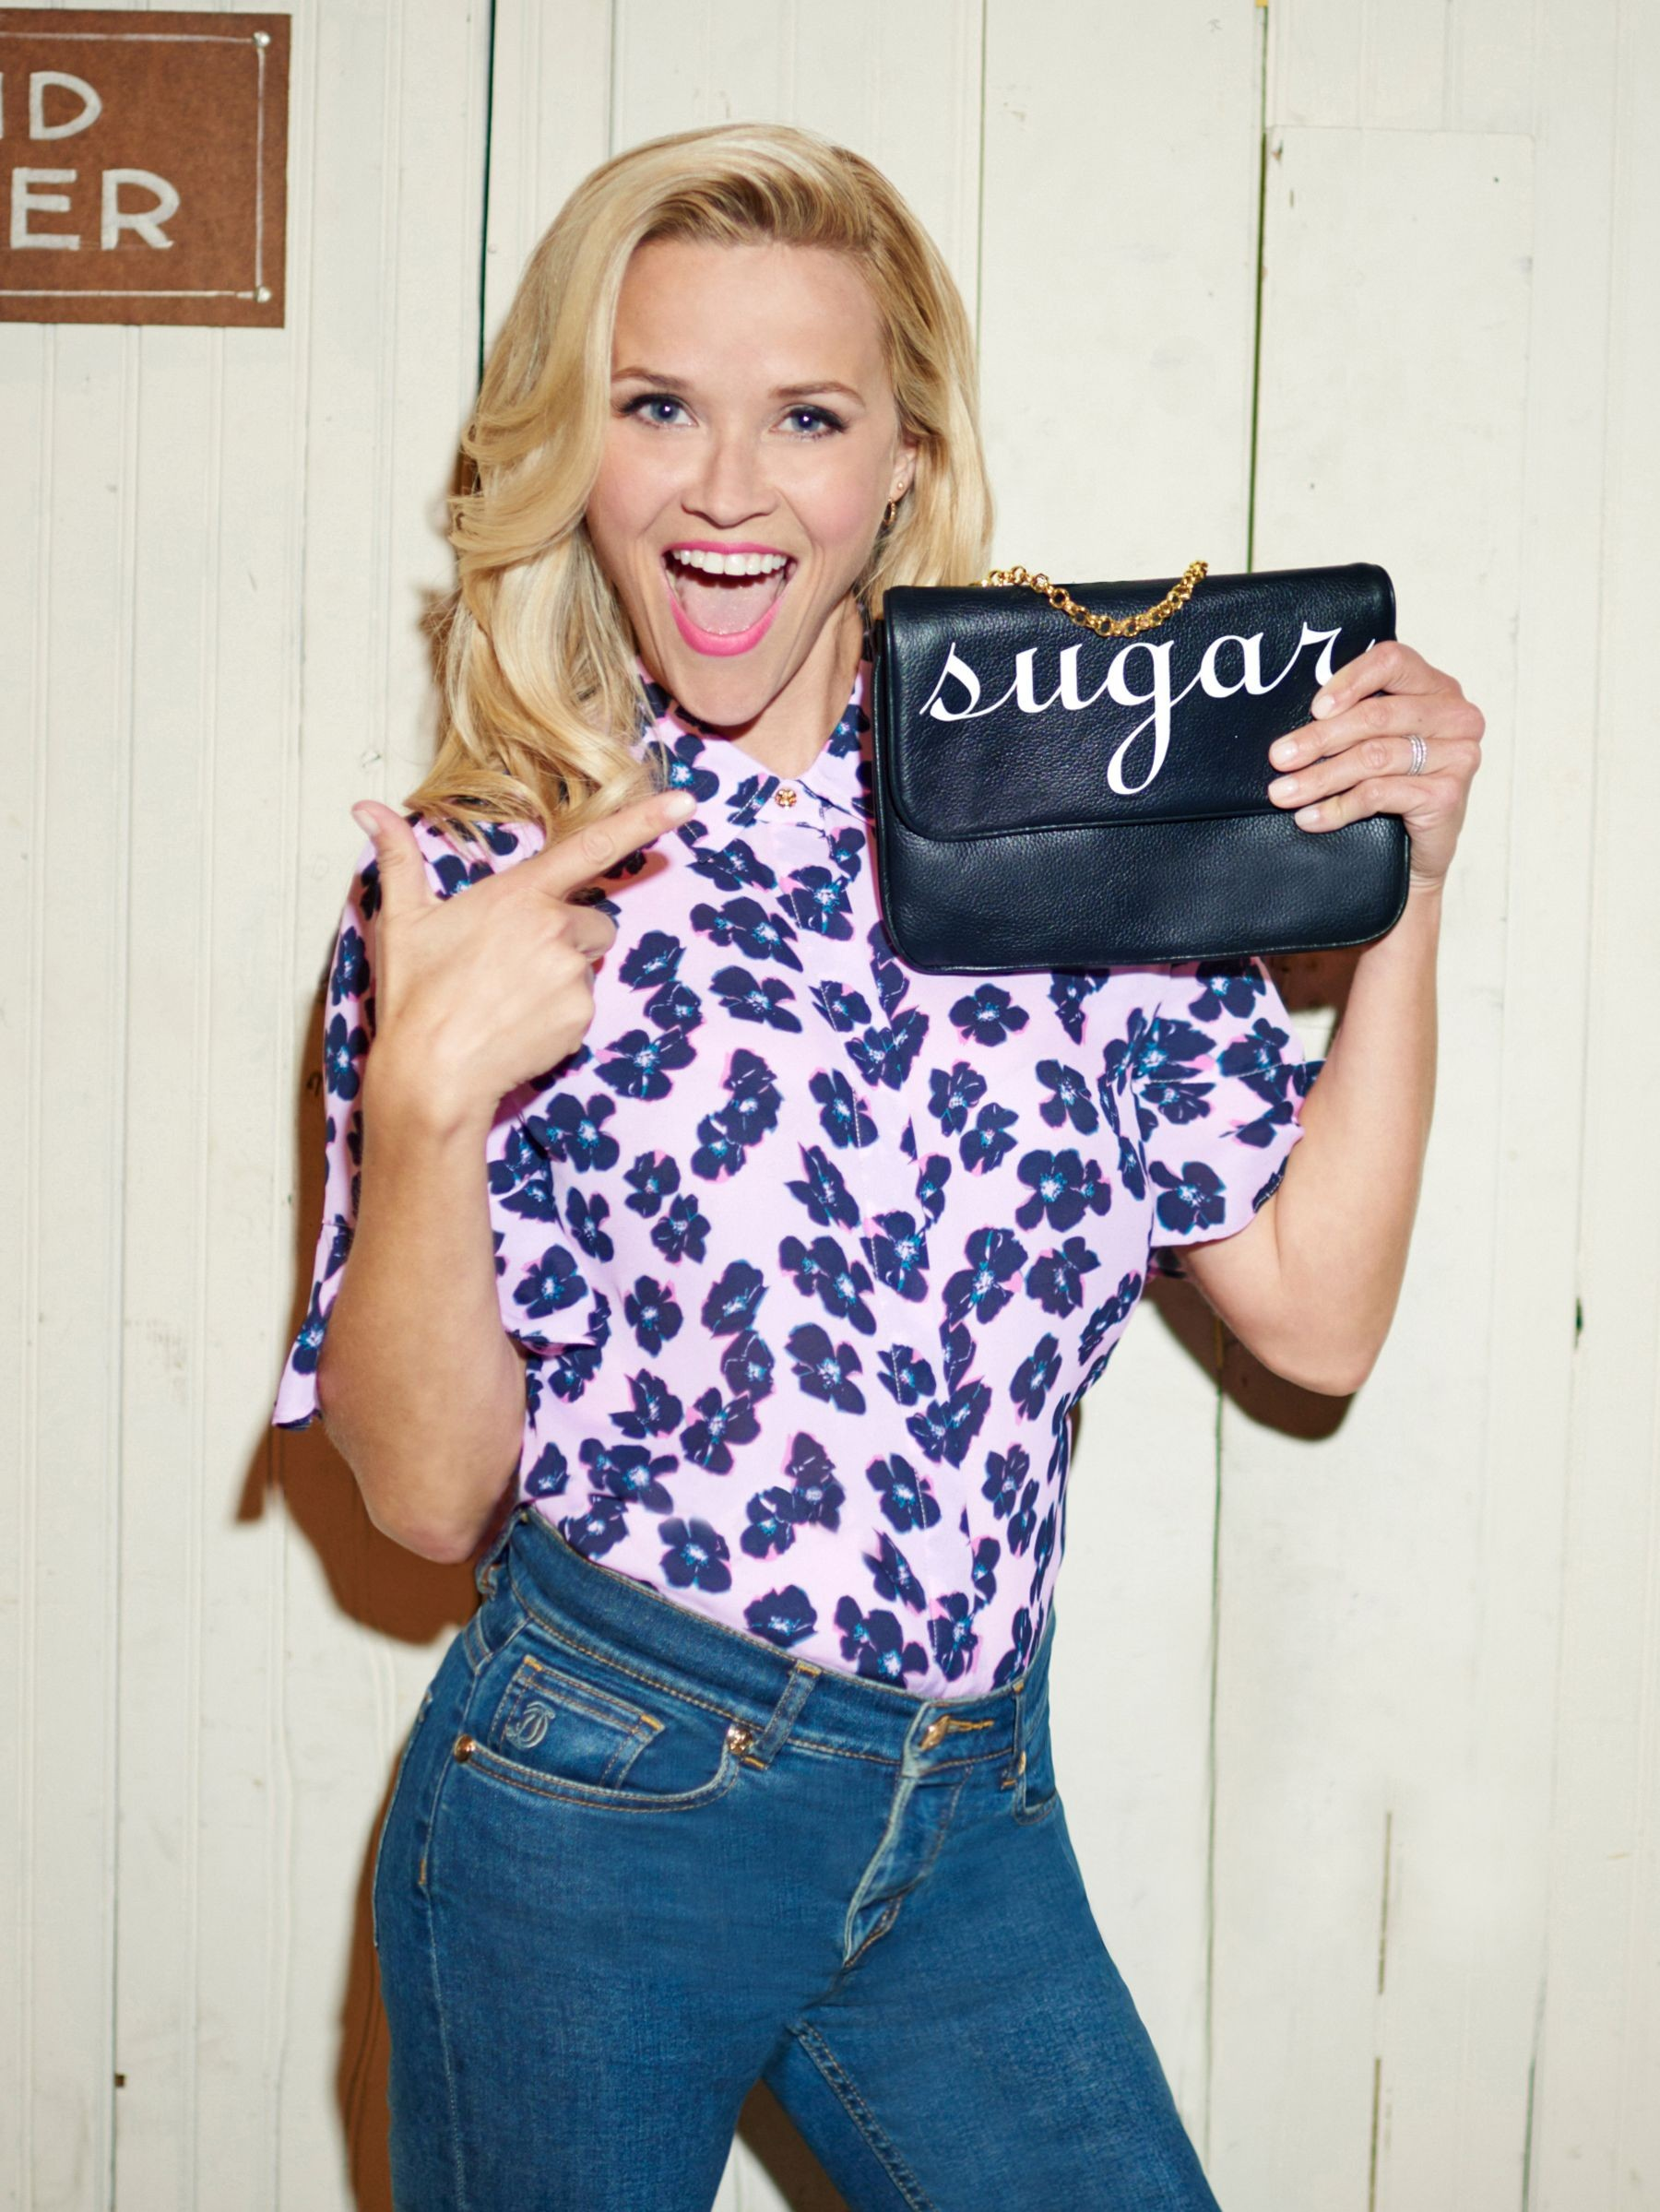 { Sugar Darlin Flippa Clutch via Draper James }